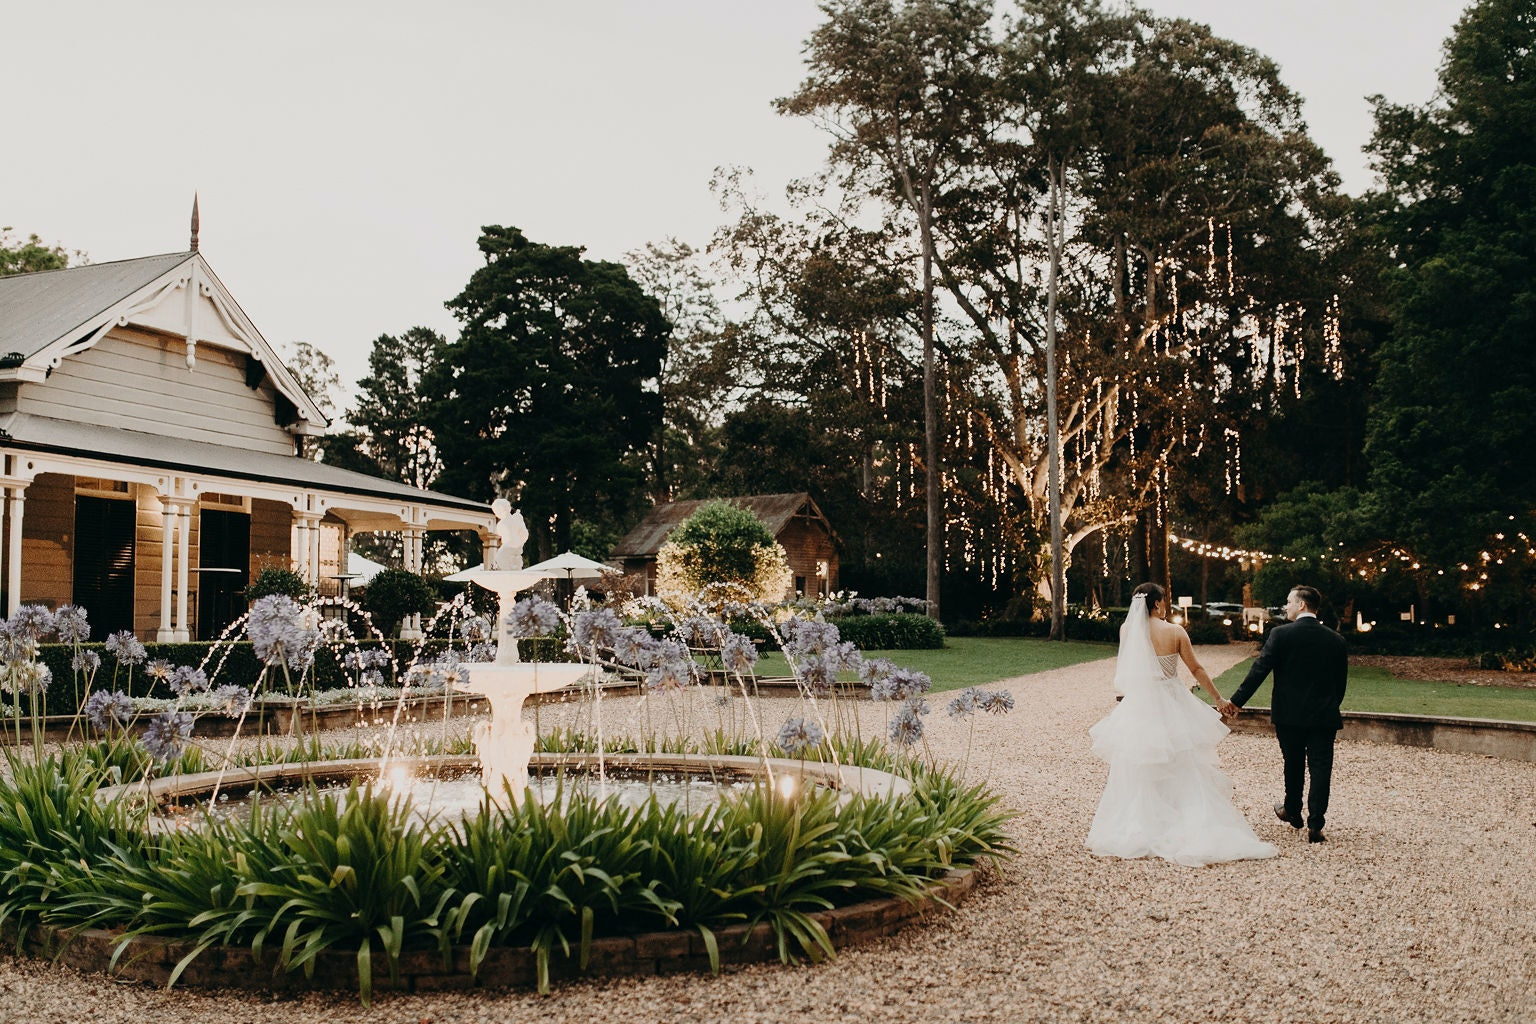 Bride and groom walking down stone driveway holding hands